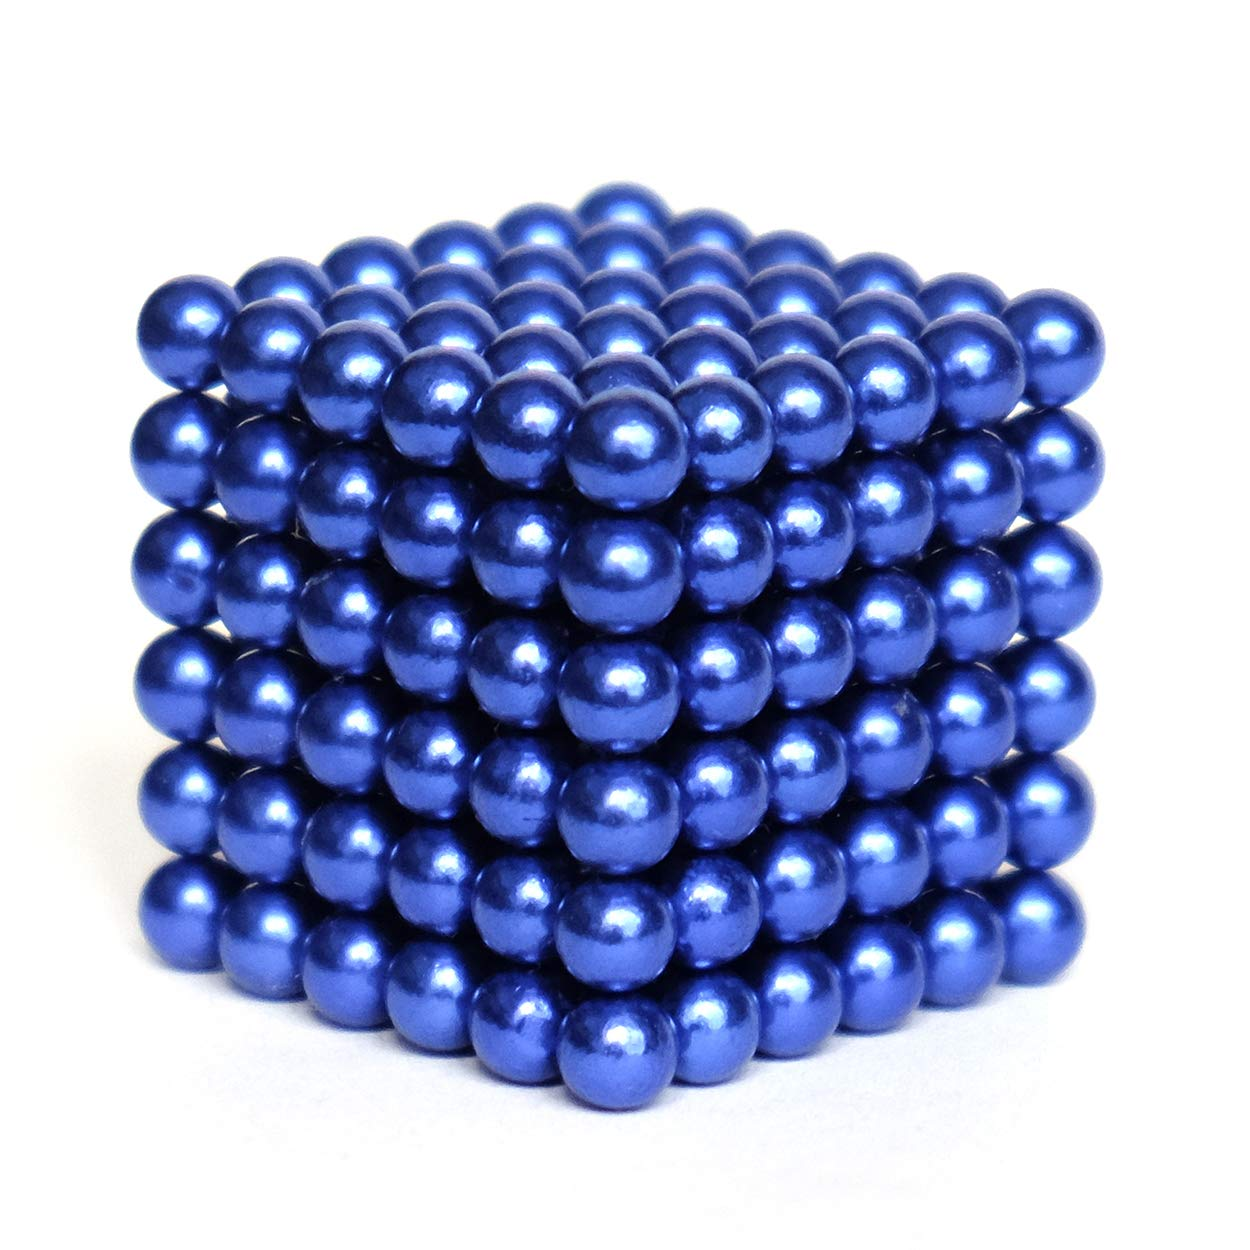 aBrilliantLife 5MM 216 Pieces BallsToys Sculpture Building Blocks Fidget Cube Stem Gift for Intellectual Development Office Toy Stress Relief Gift for Teens and Adult -Blue